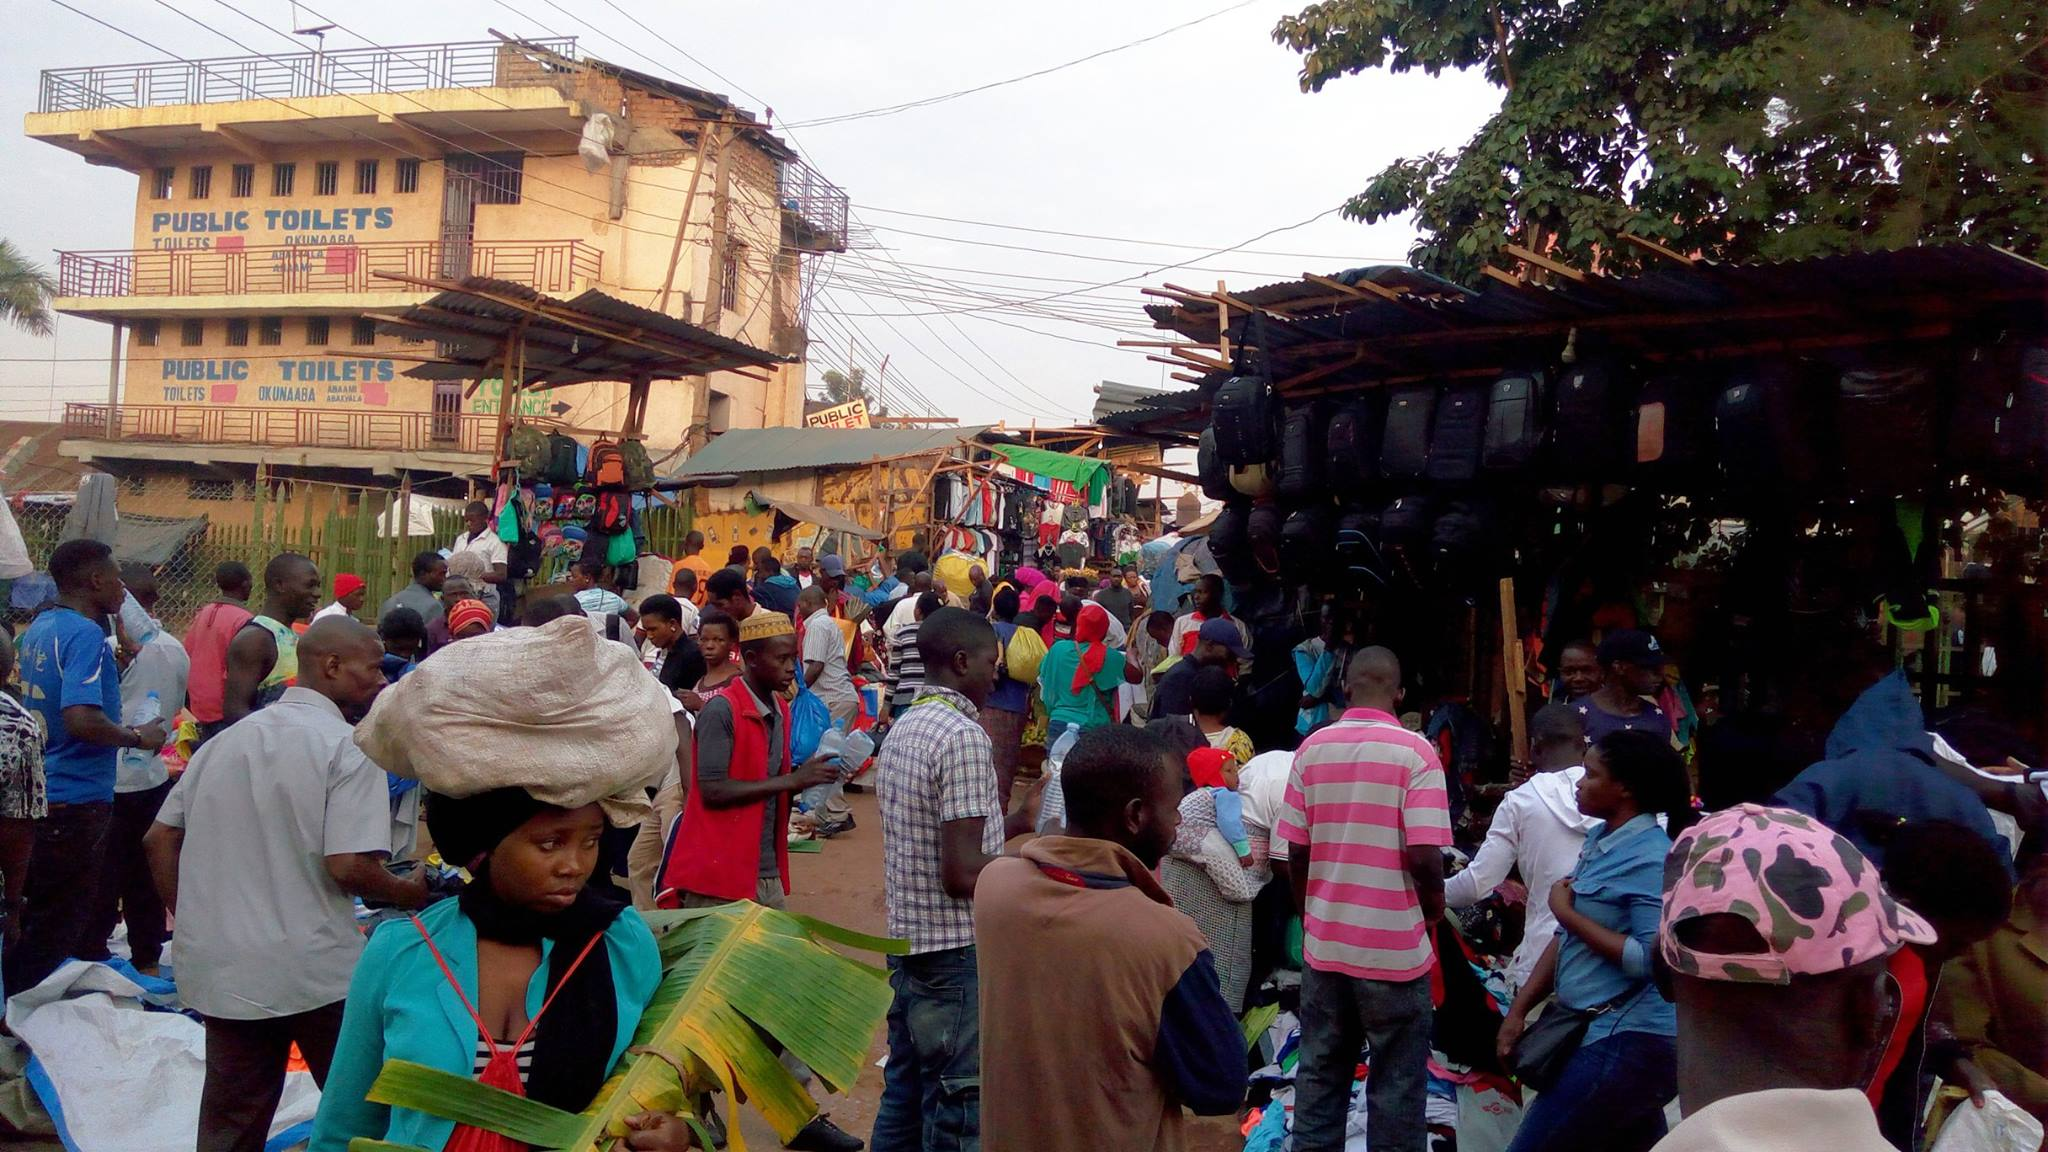 People in Kampala flock Owino Market as early as 7:00 am to shop items at wholesale prices (Photo by Maurice Muhwezi)